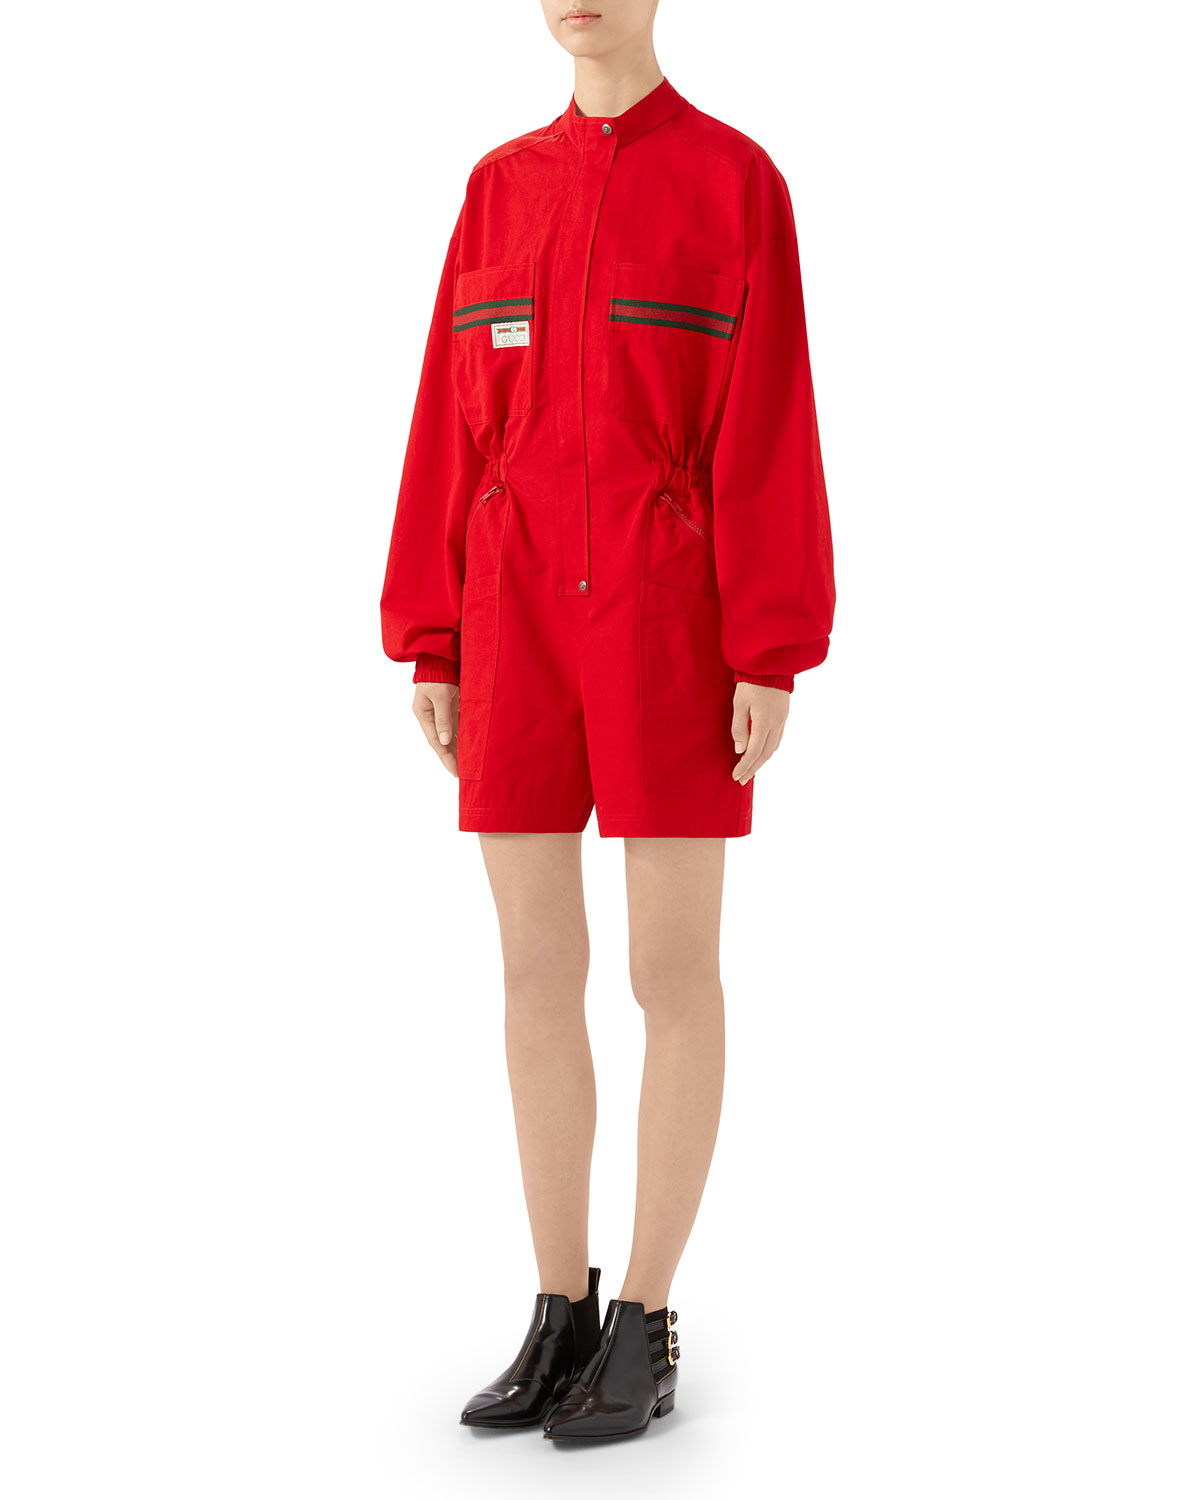 Gucci Tops LONG-SLEEVE COTTON PANAMA ROMPER